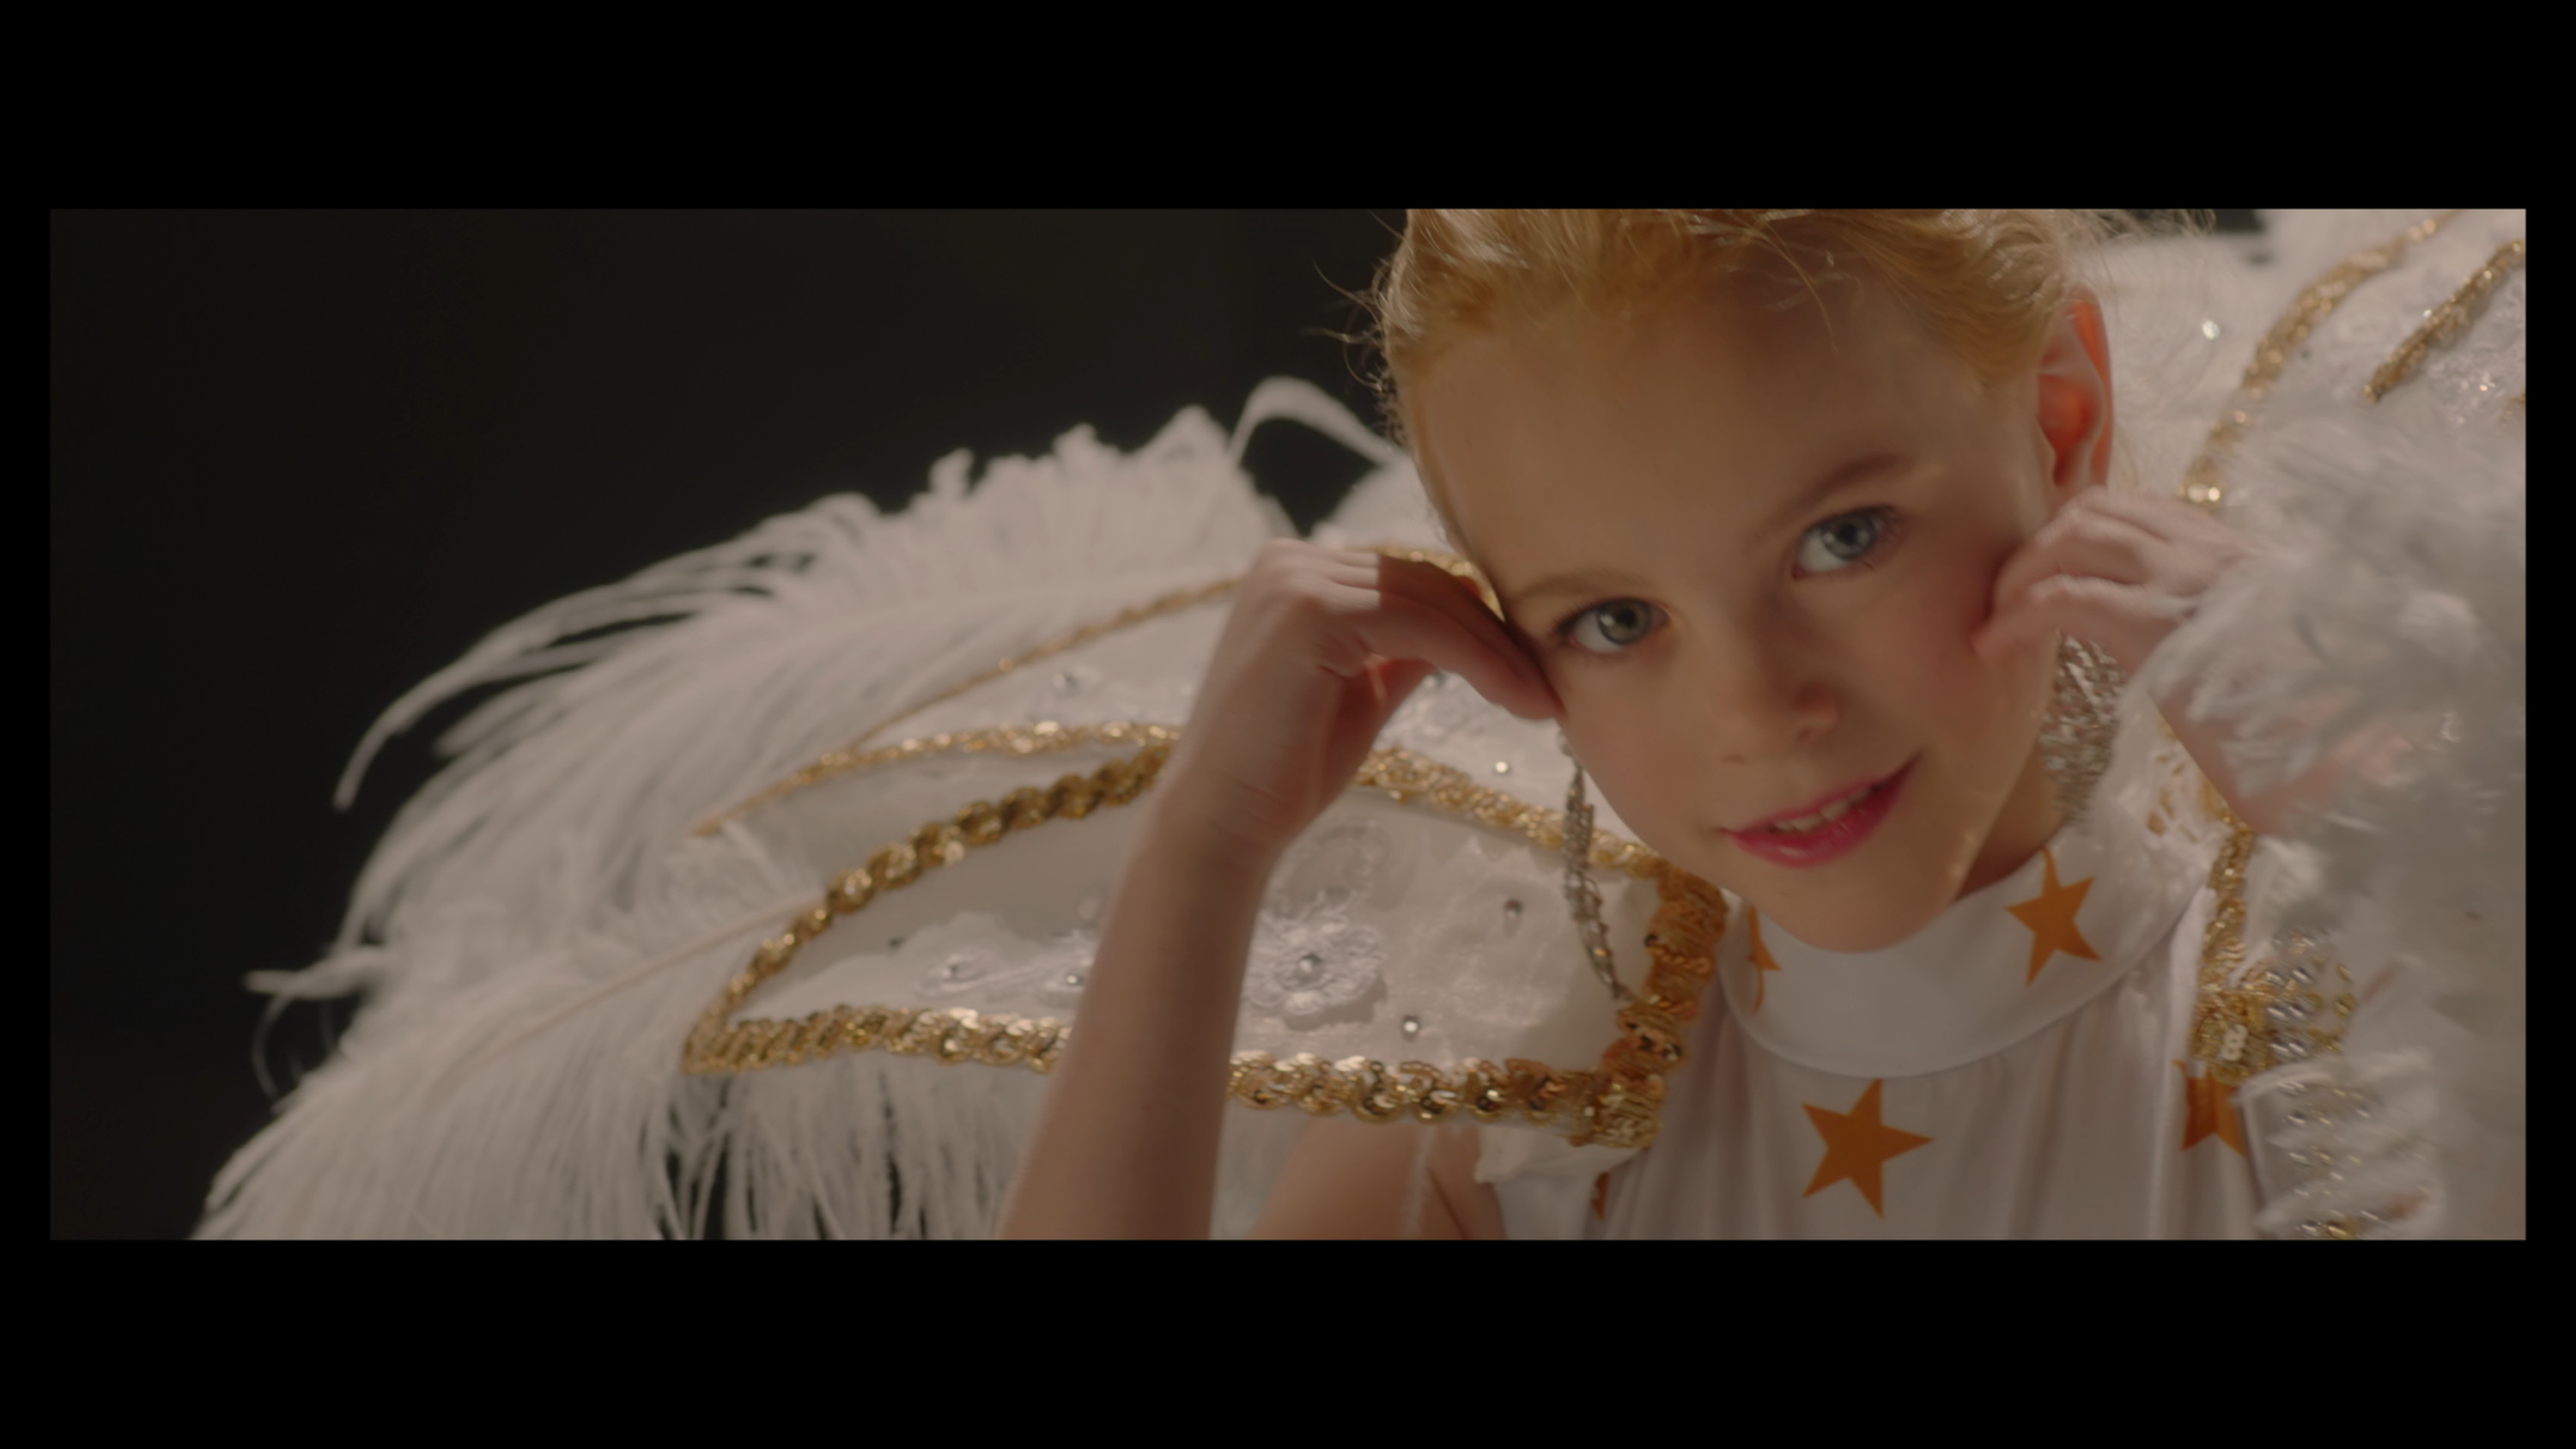 New Netflix documentary on JonBenét Ramsey looks chilling